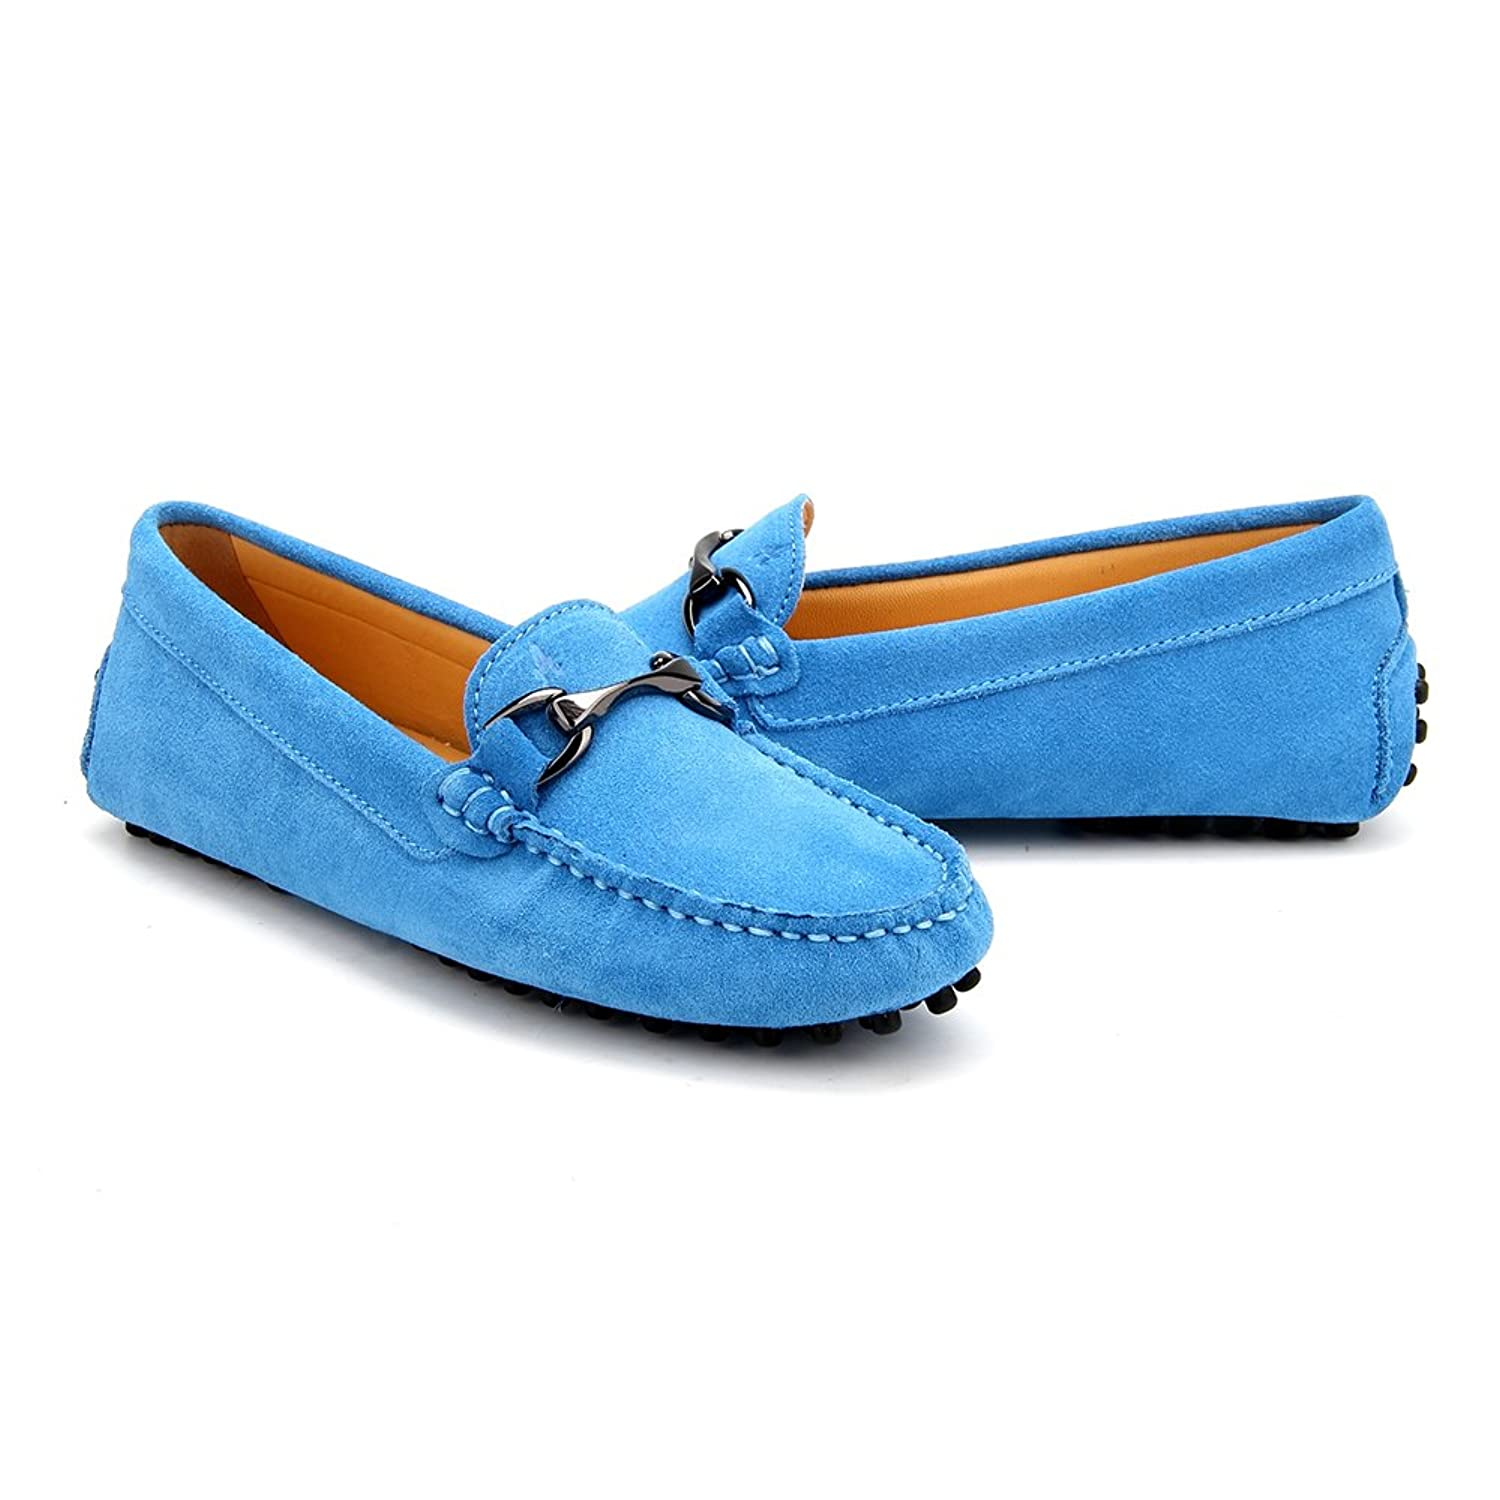 AUSLAND Women Suede Moccasin Slip-on Loafer Casual Shoe 7062